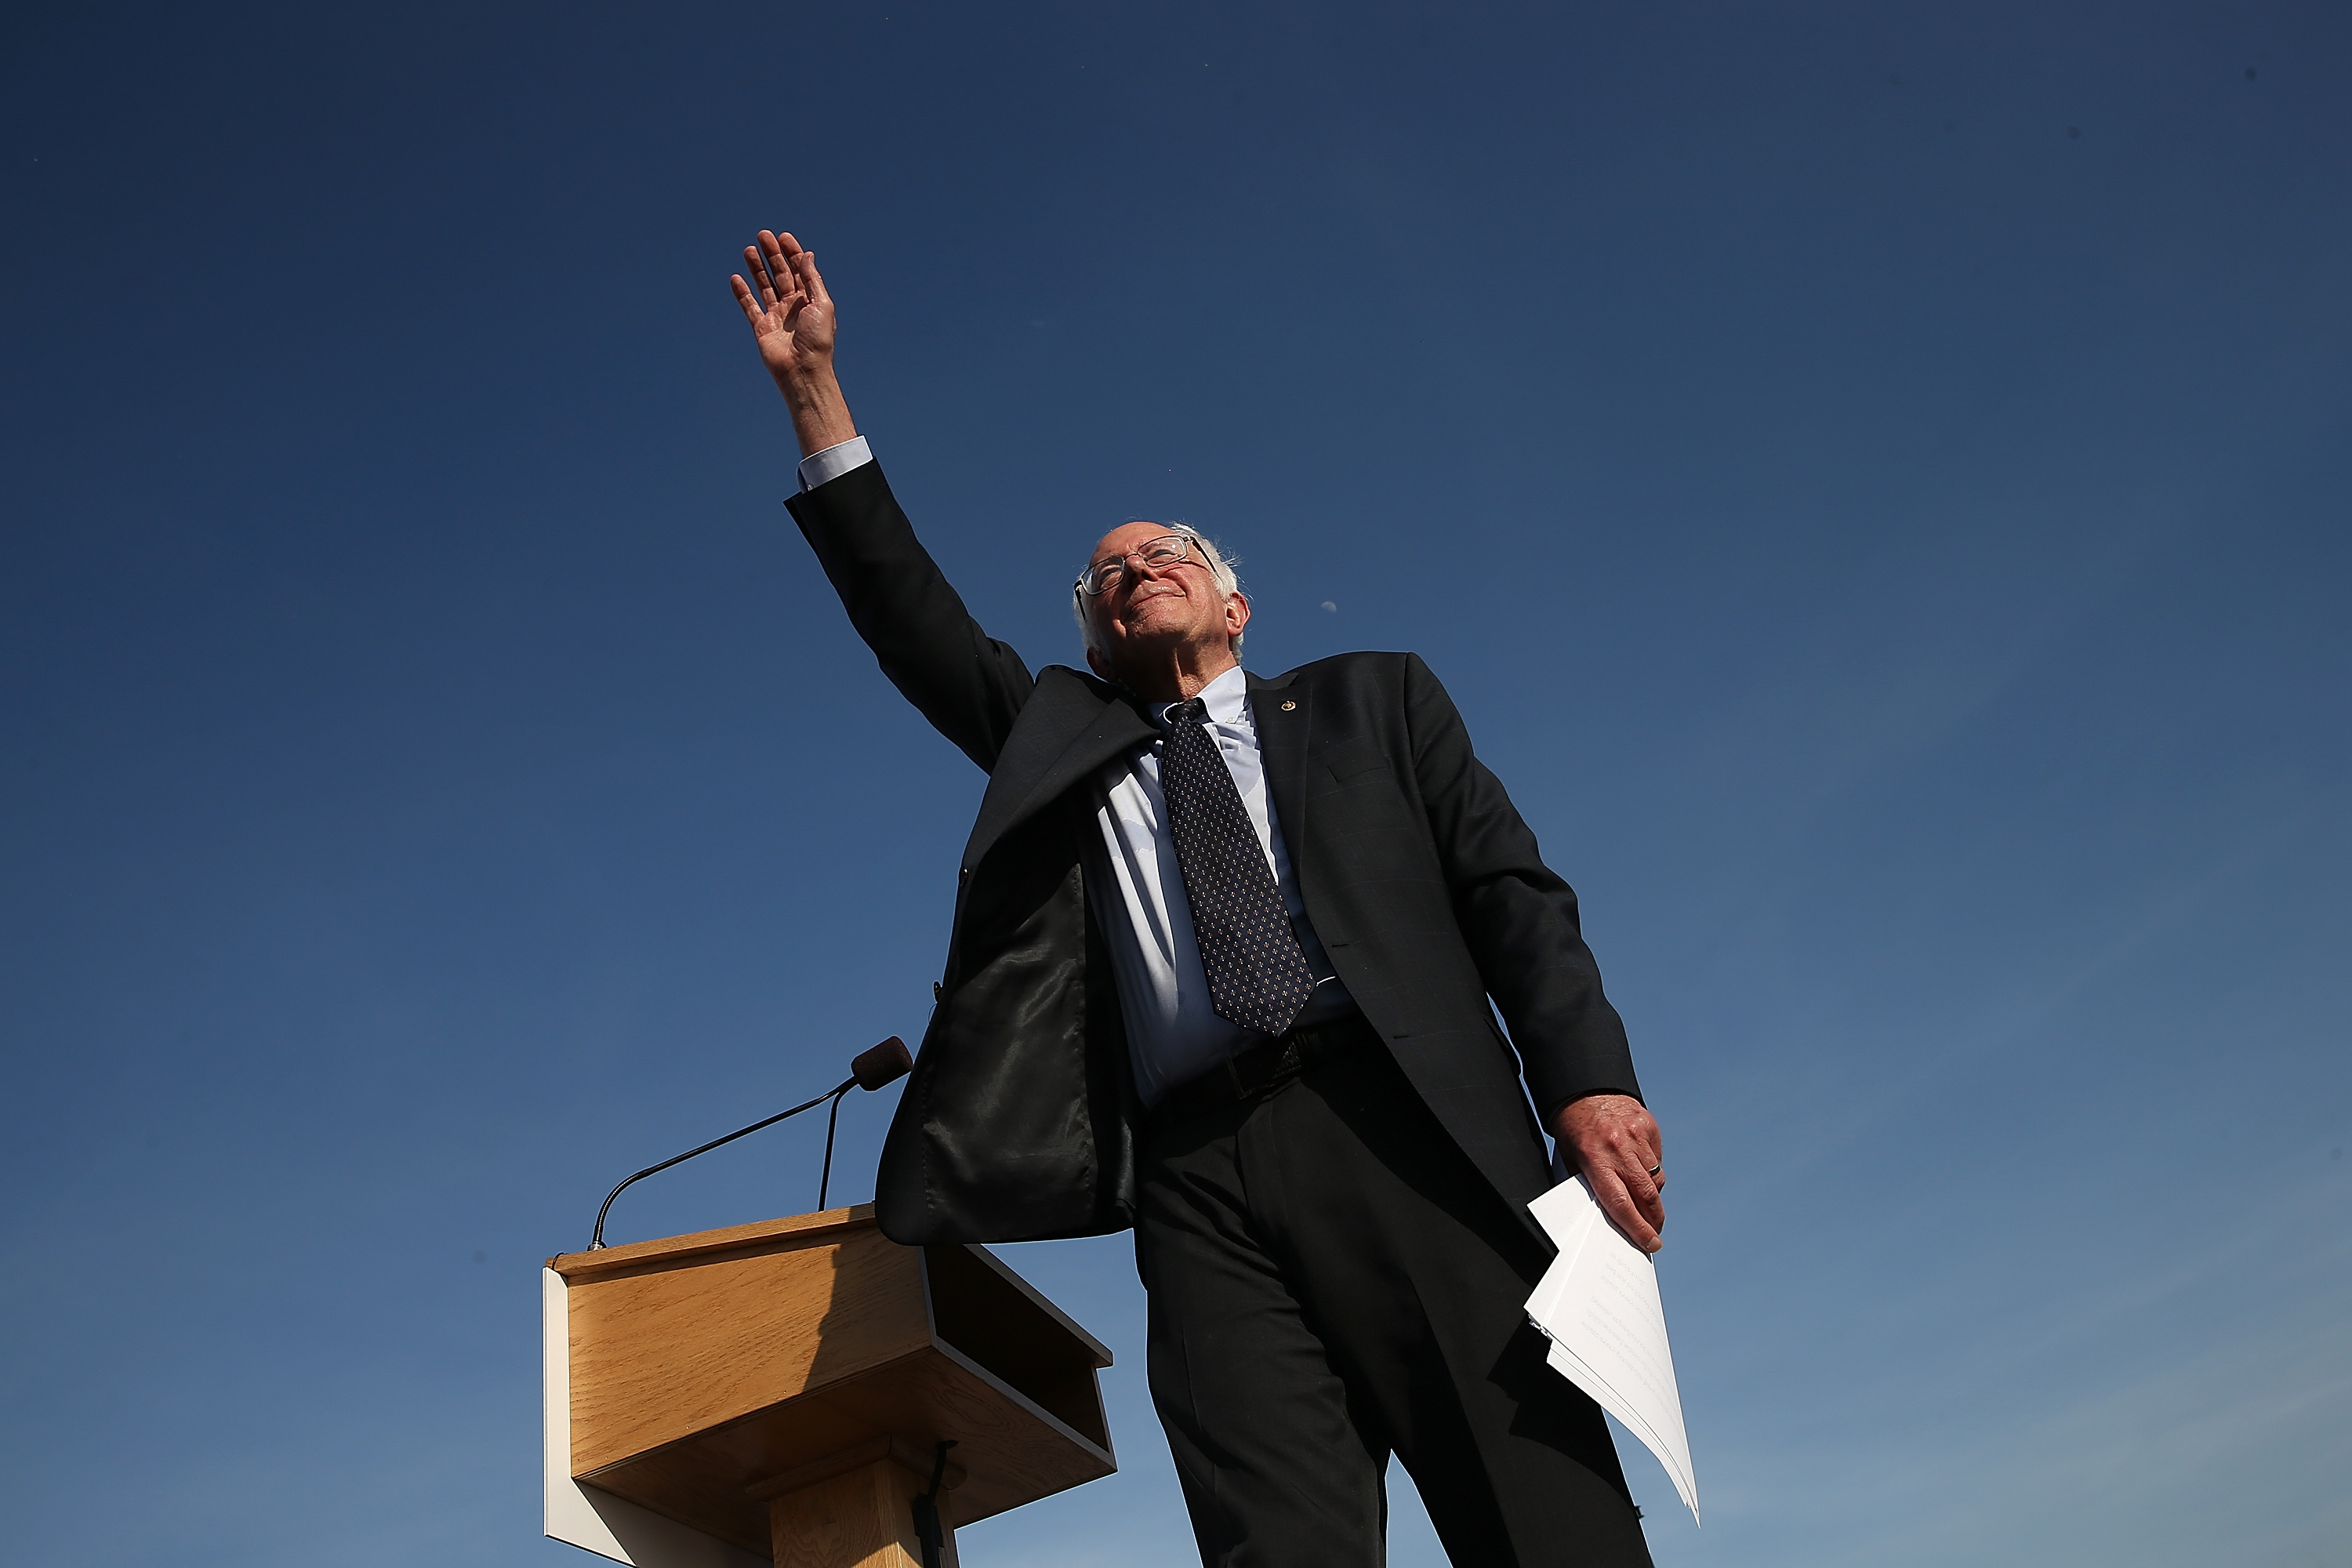 Bernie Sanders has big ideas, and they deserve our attention